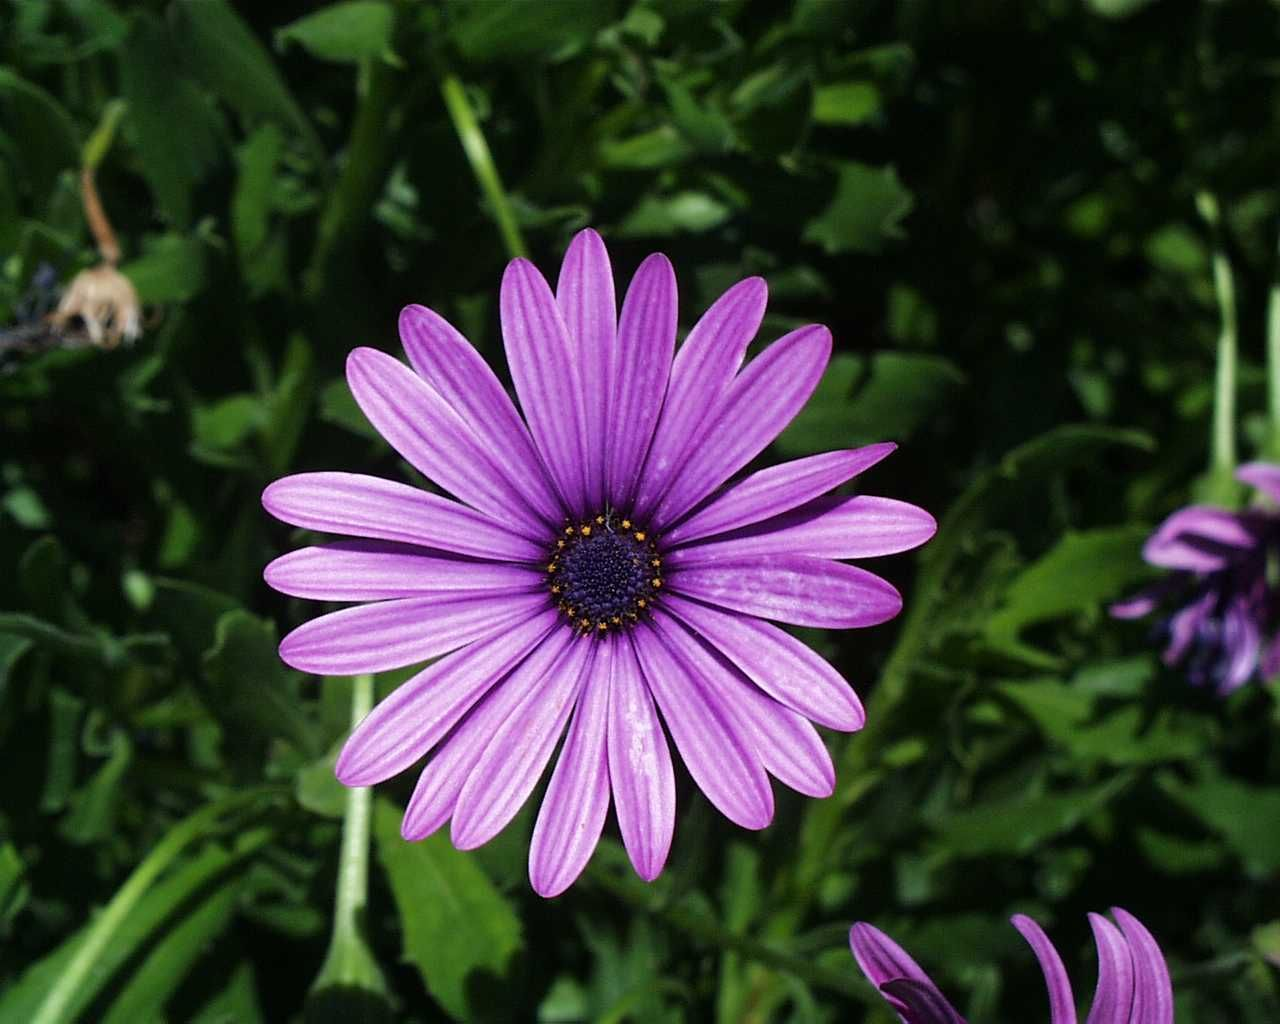 Flowers flowers pinterest flowers daisythis april birth flower has the flower meaning of wholehearted modesty izmirmasajfo Image collections